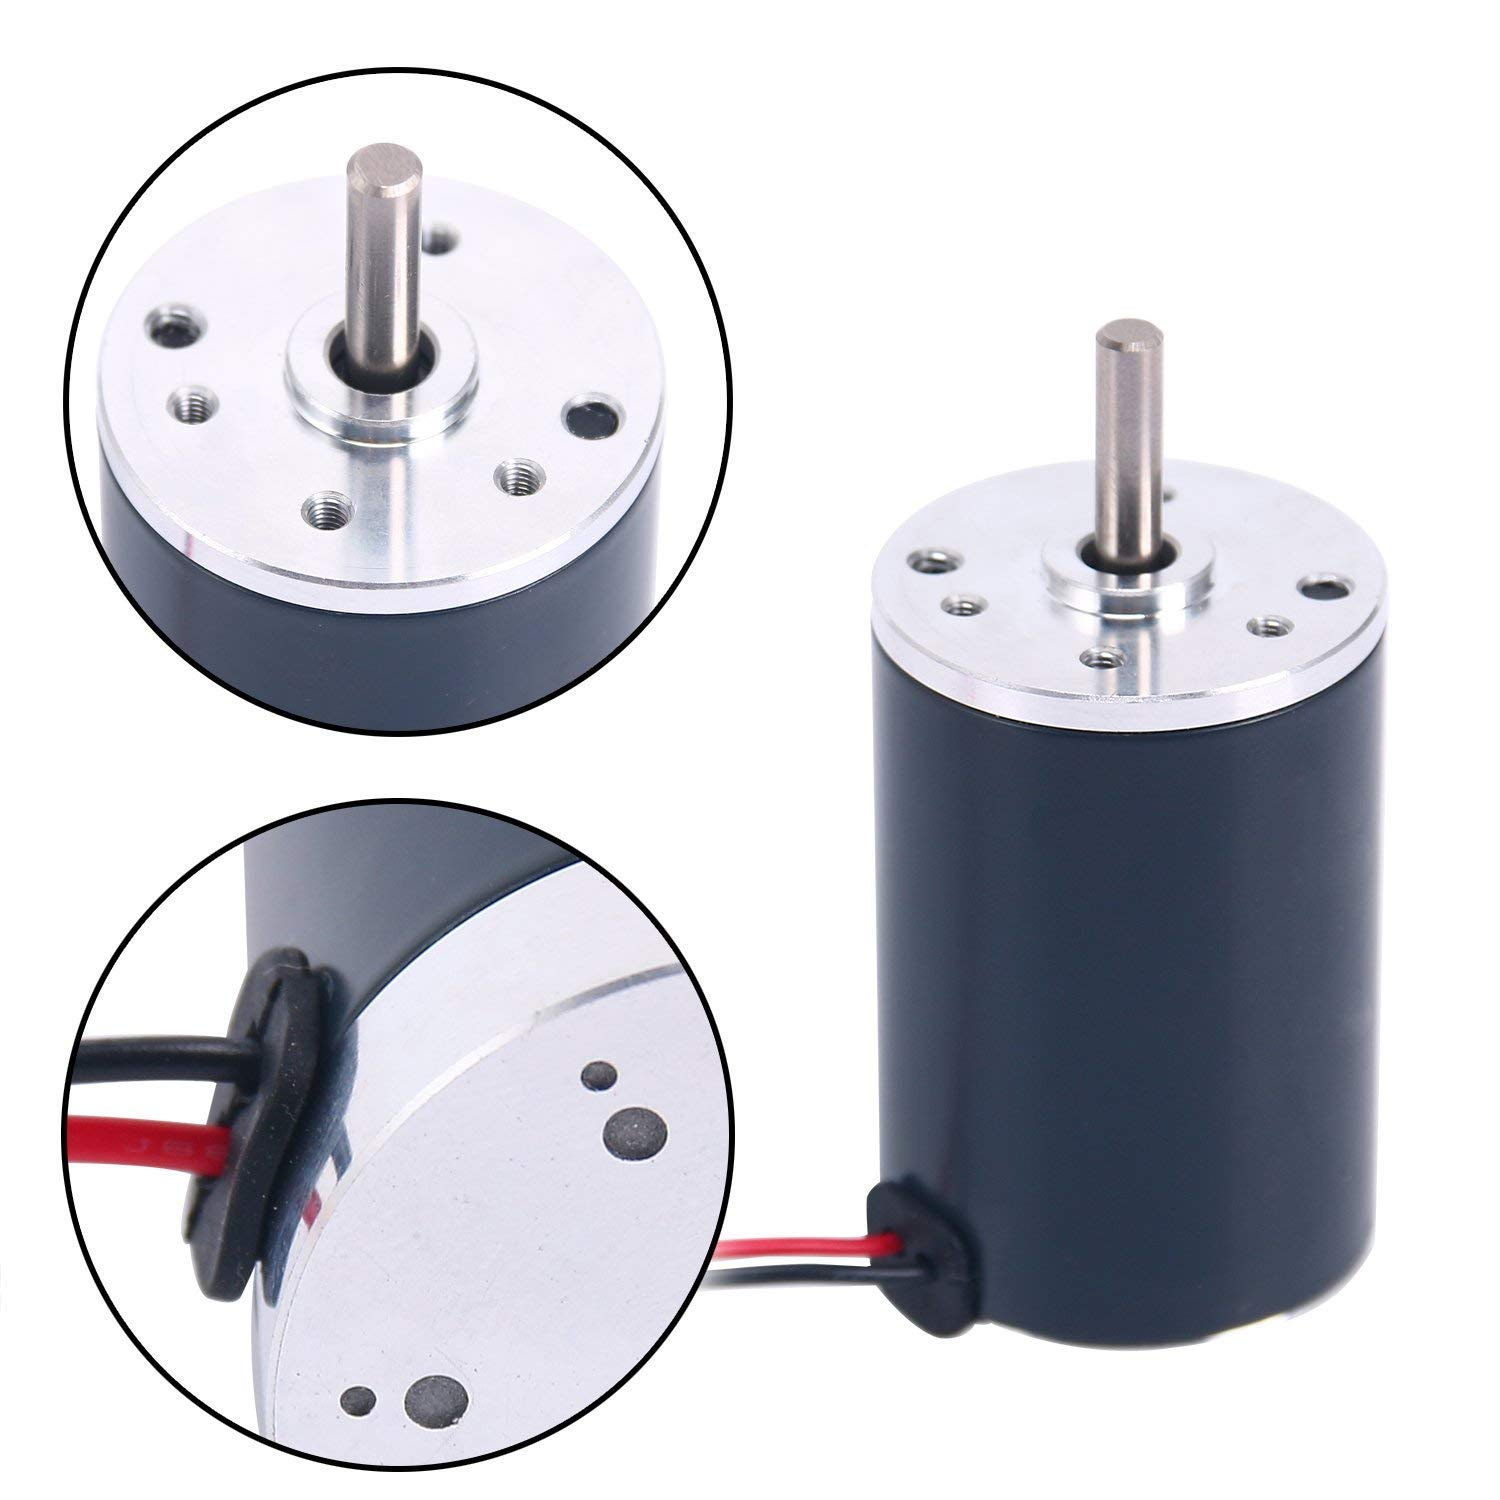 Details about 12V DC Brushed Electric Motor 38mm CCW Replacement Motor …  (3000RPM)